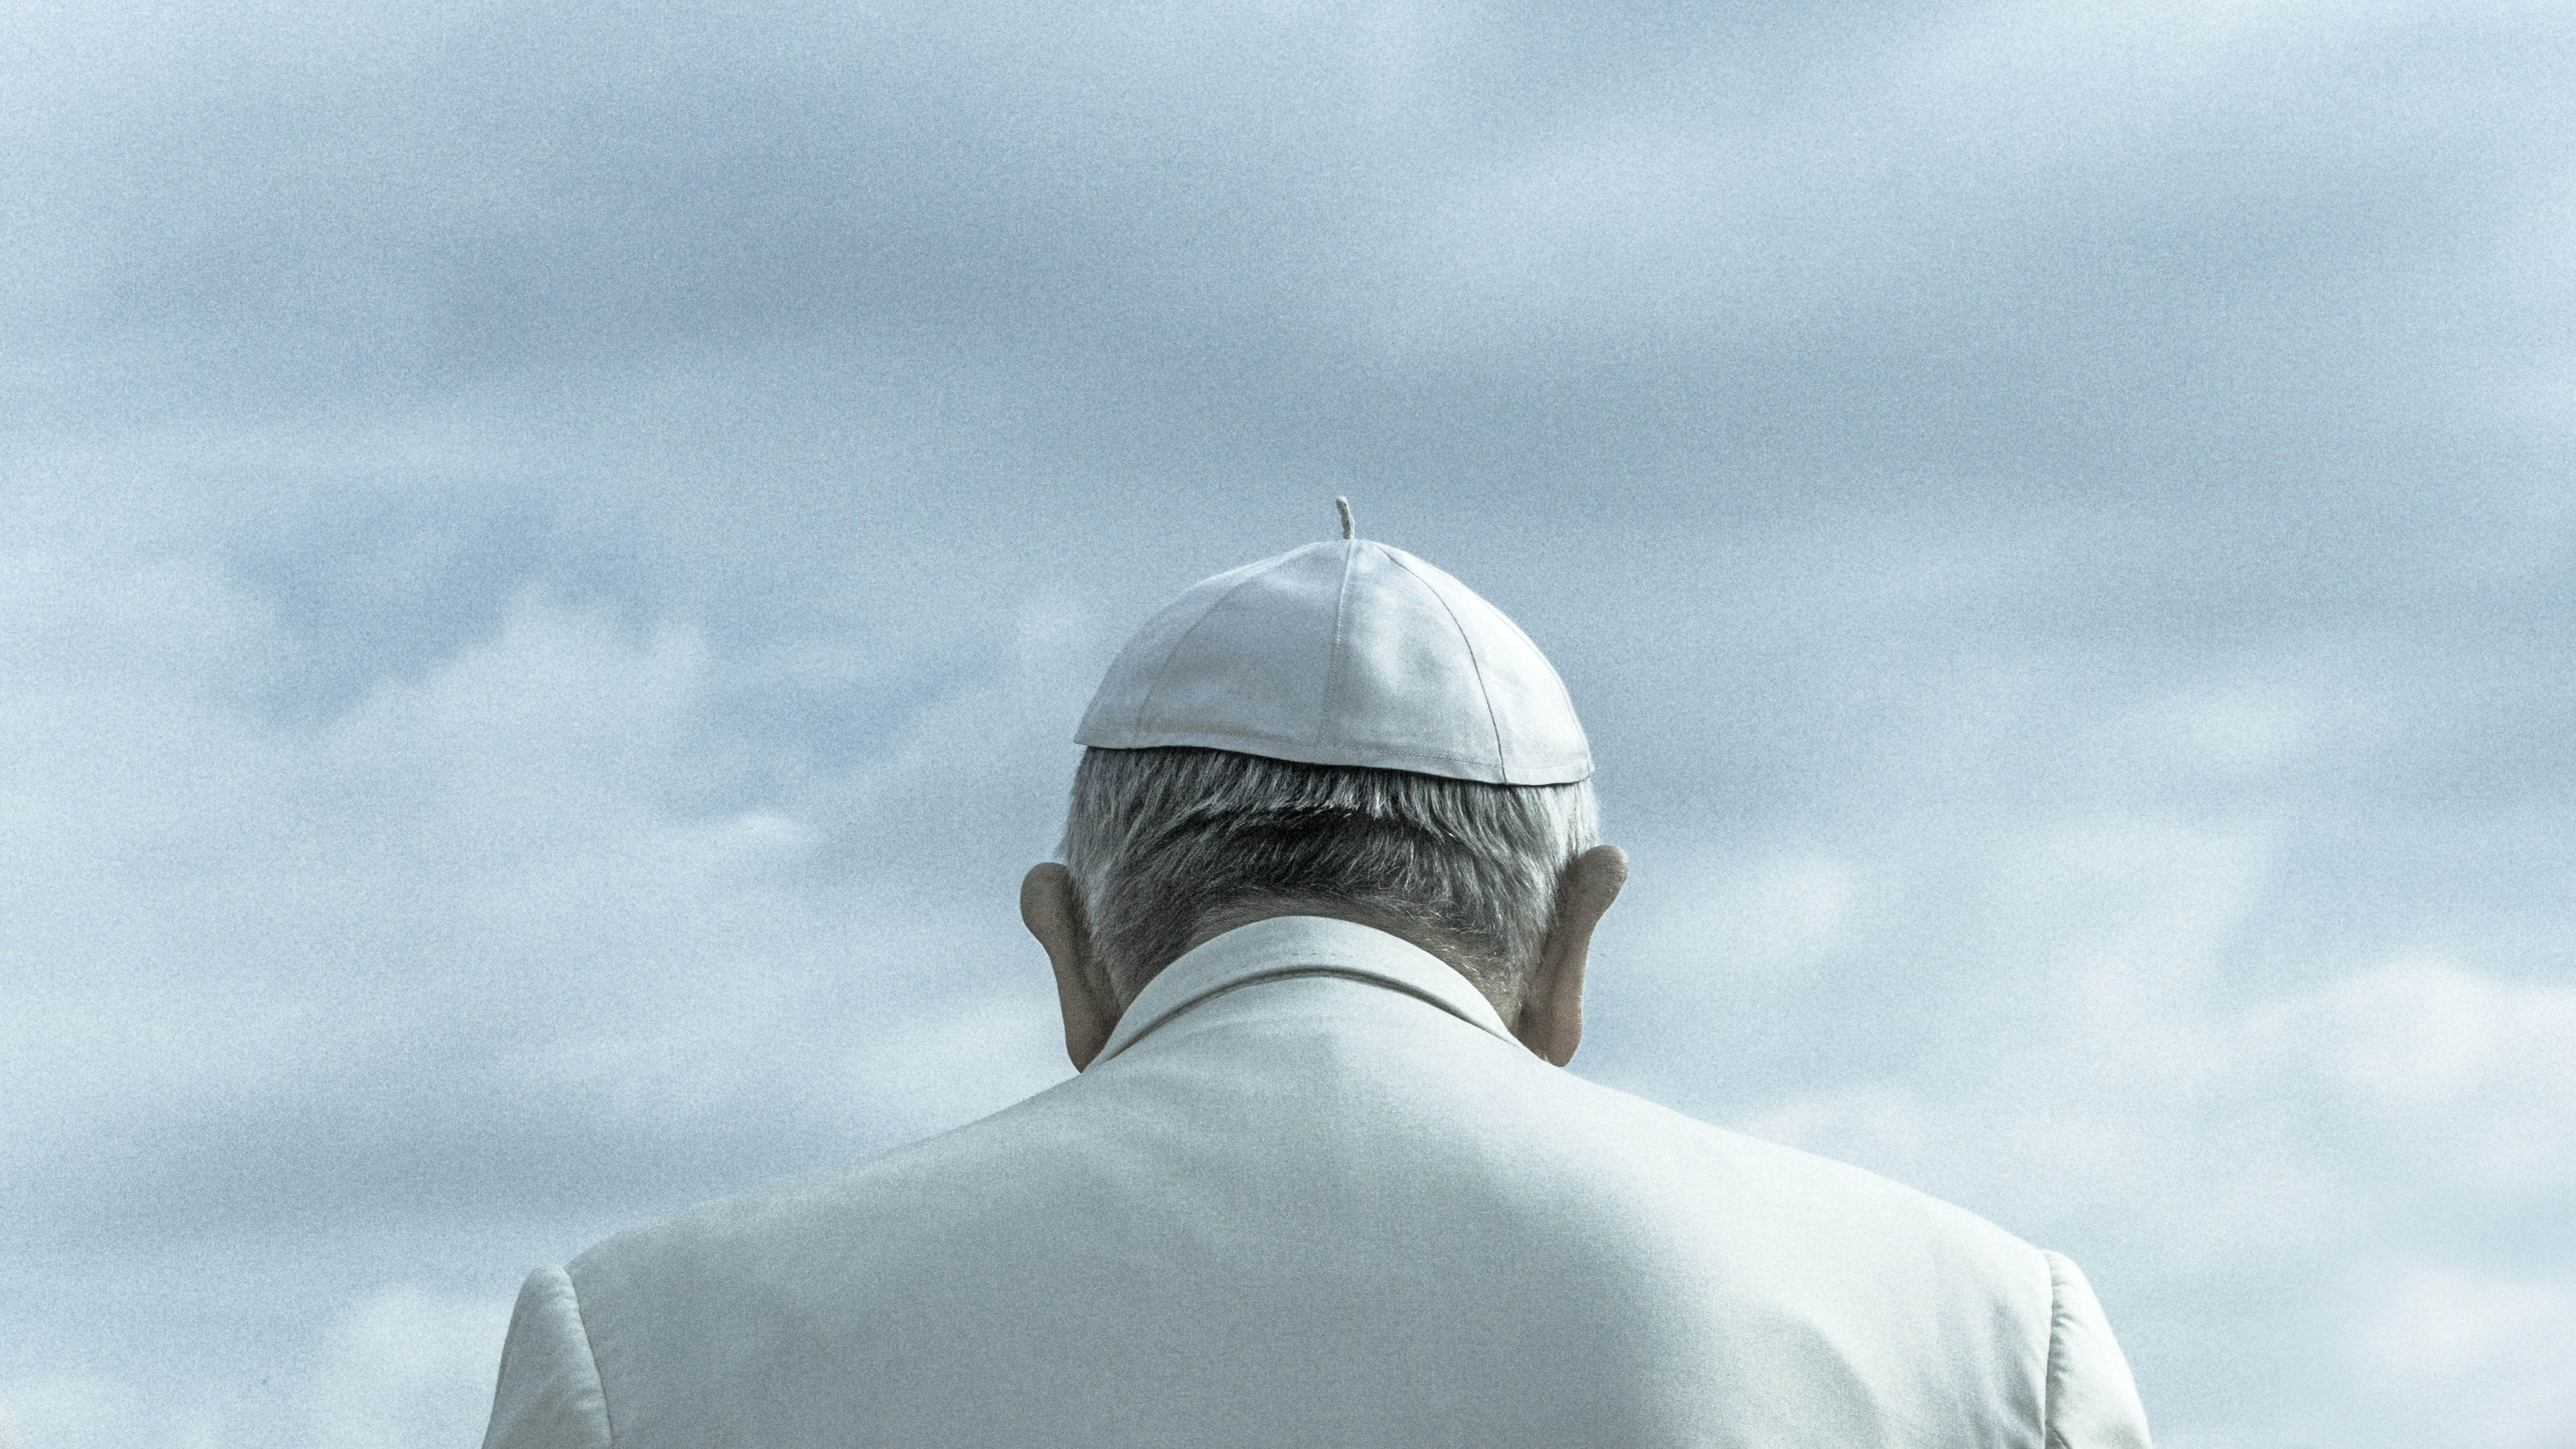 A view from behind the Pope of his shirt and hat, taken in Vatican City